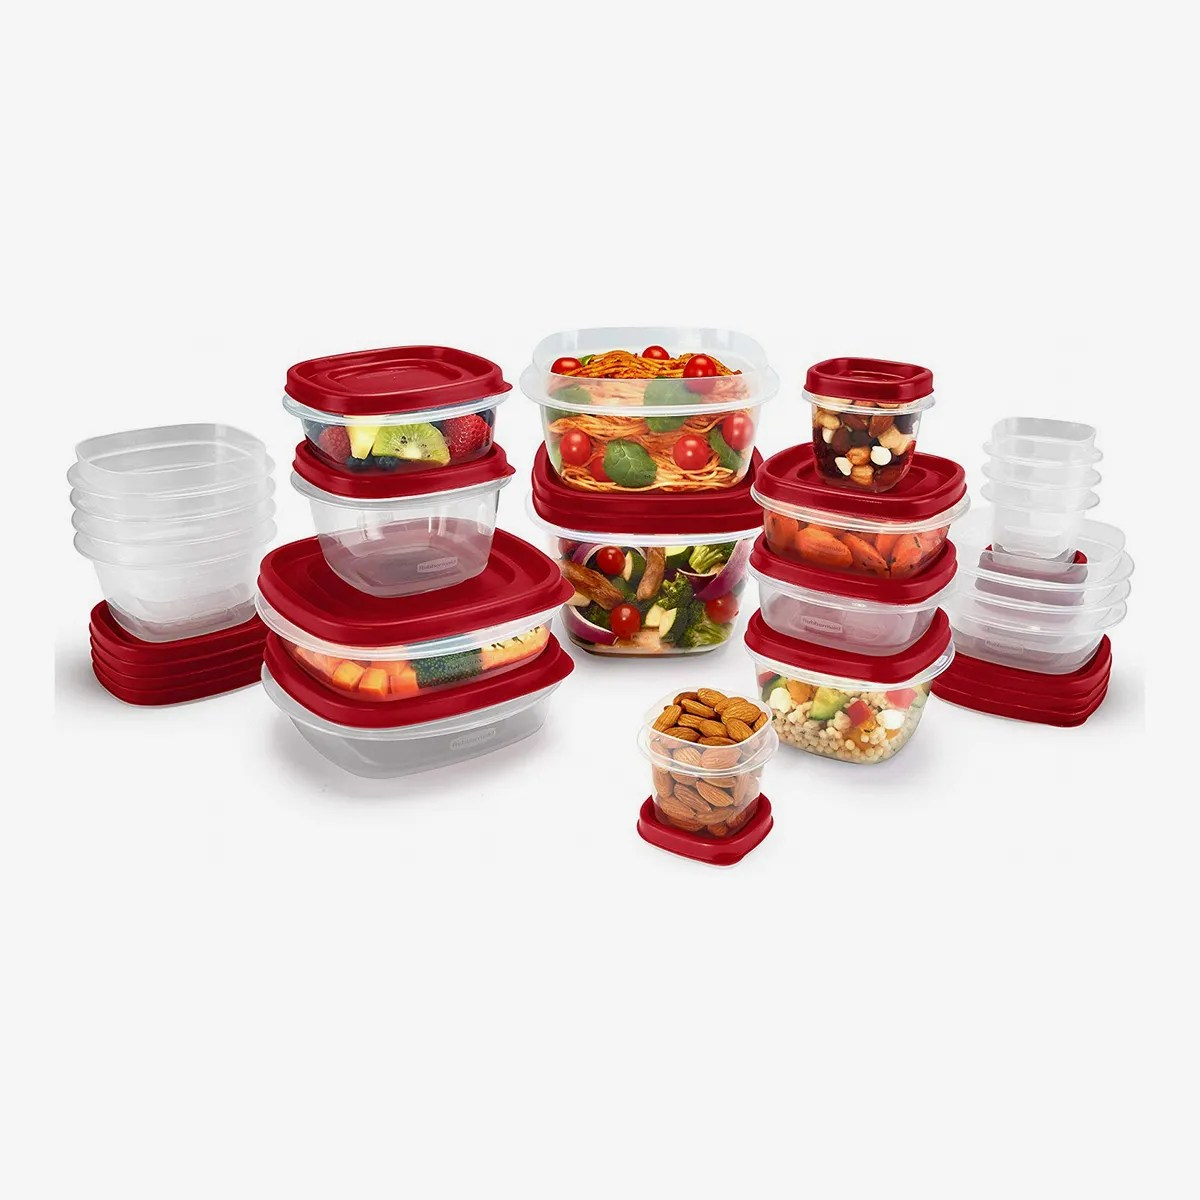 15 best food storage containers 2021